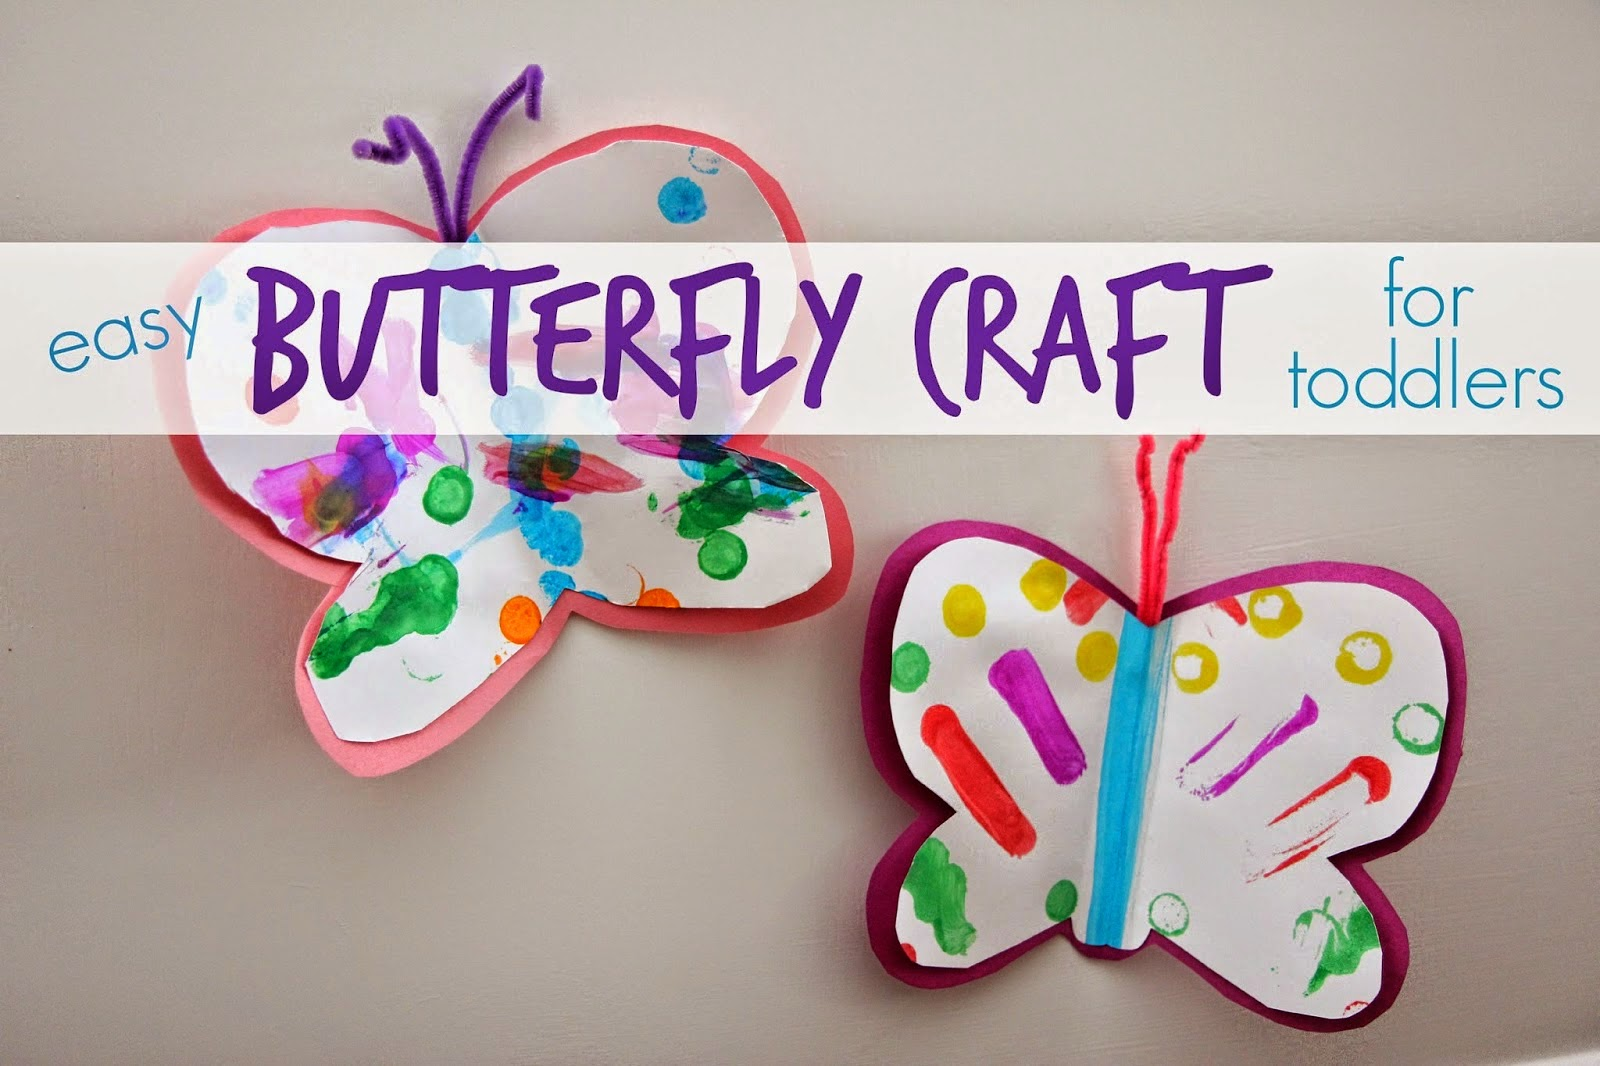 Toddler Approved 10 Favorite Supplies With Crafts To Match Enter To Win Your Greatlist Of